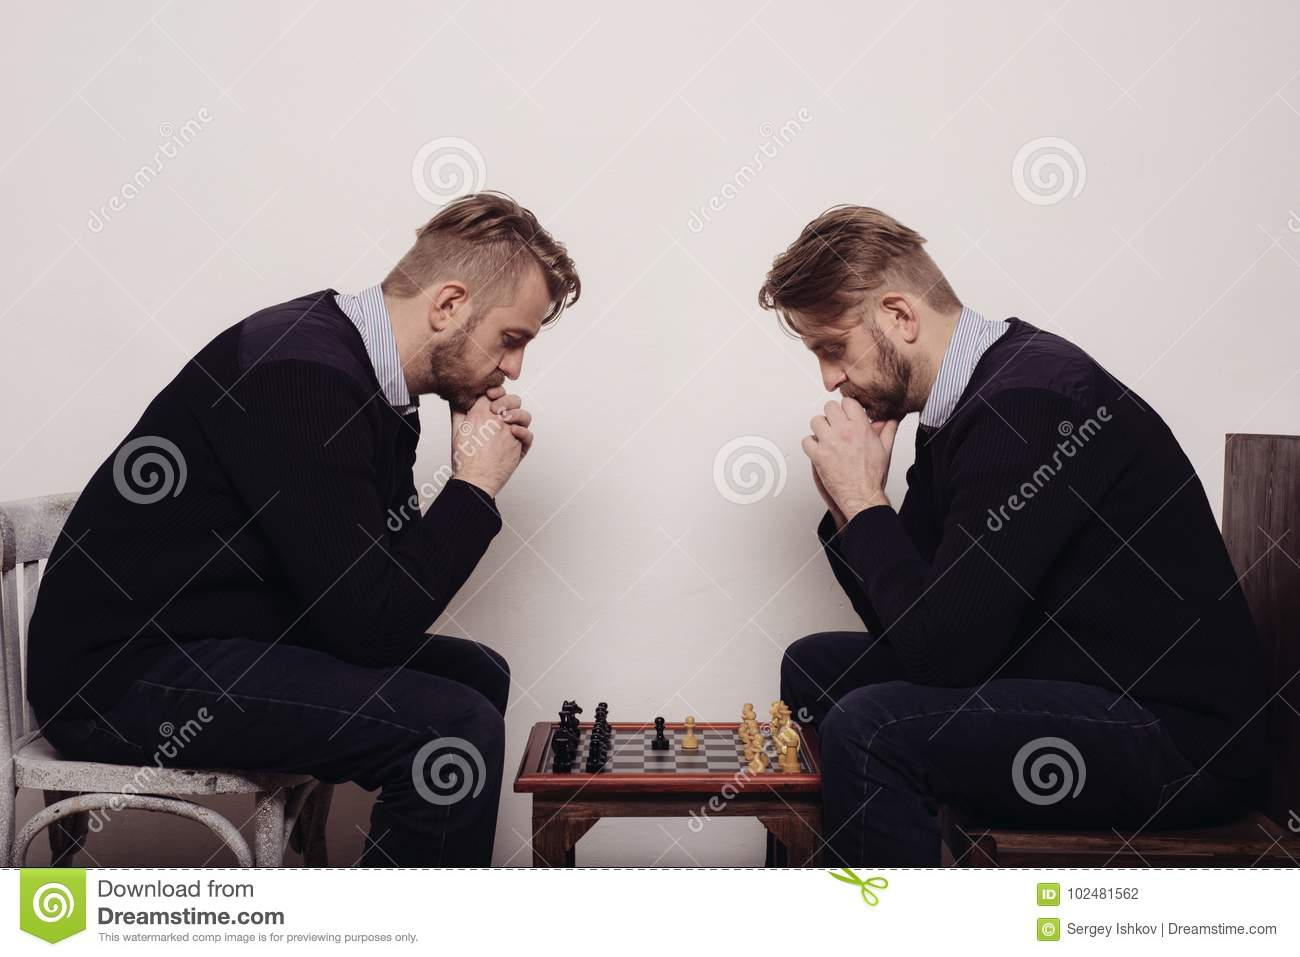 Man playing chess against himself